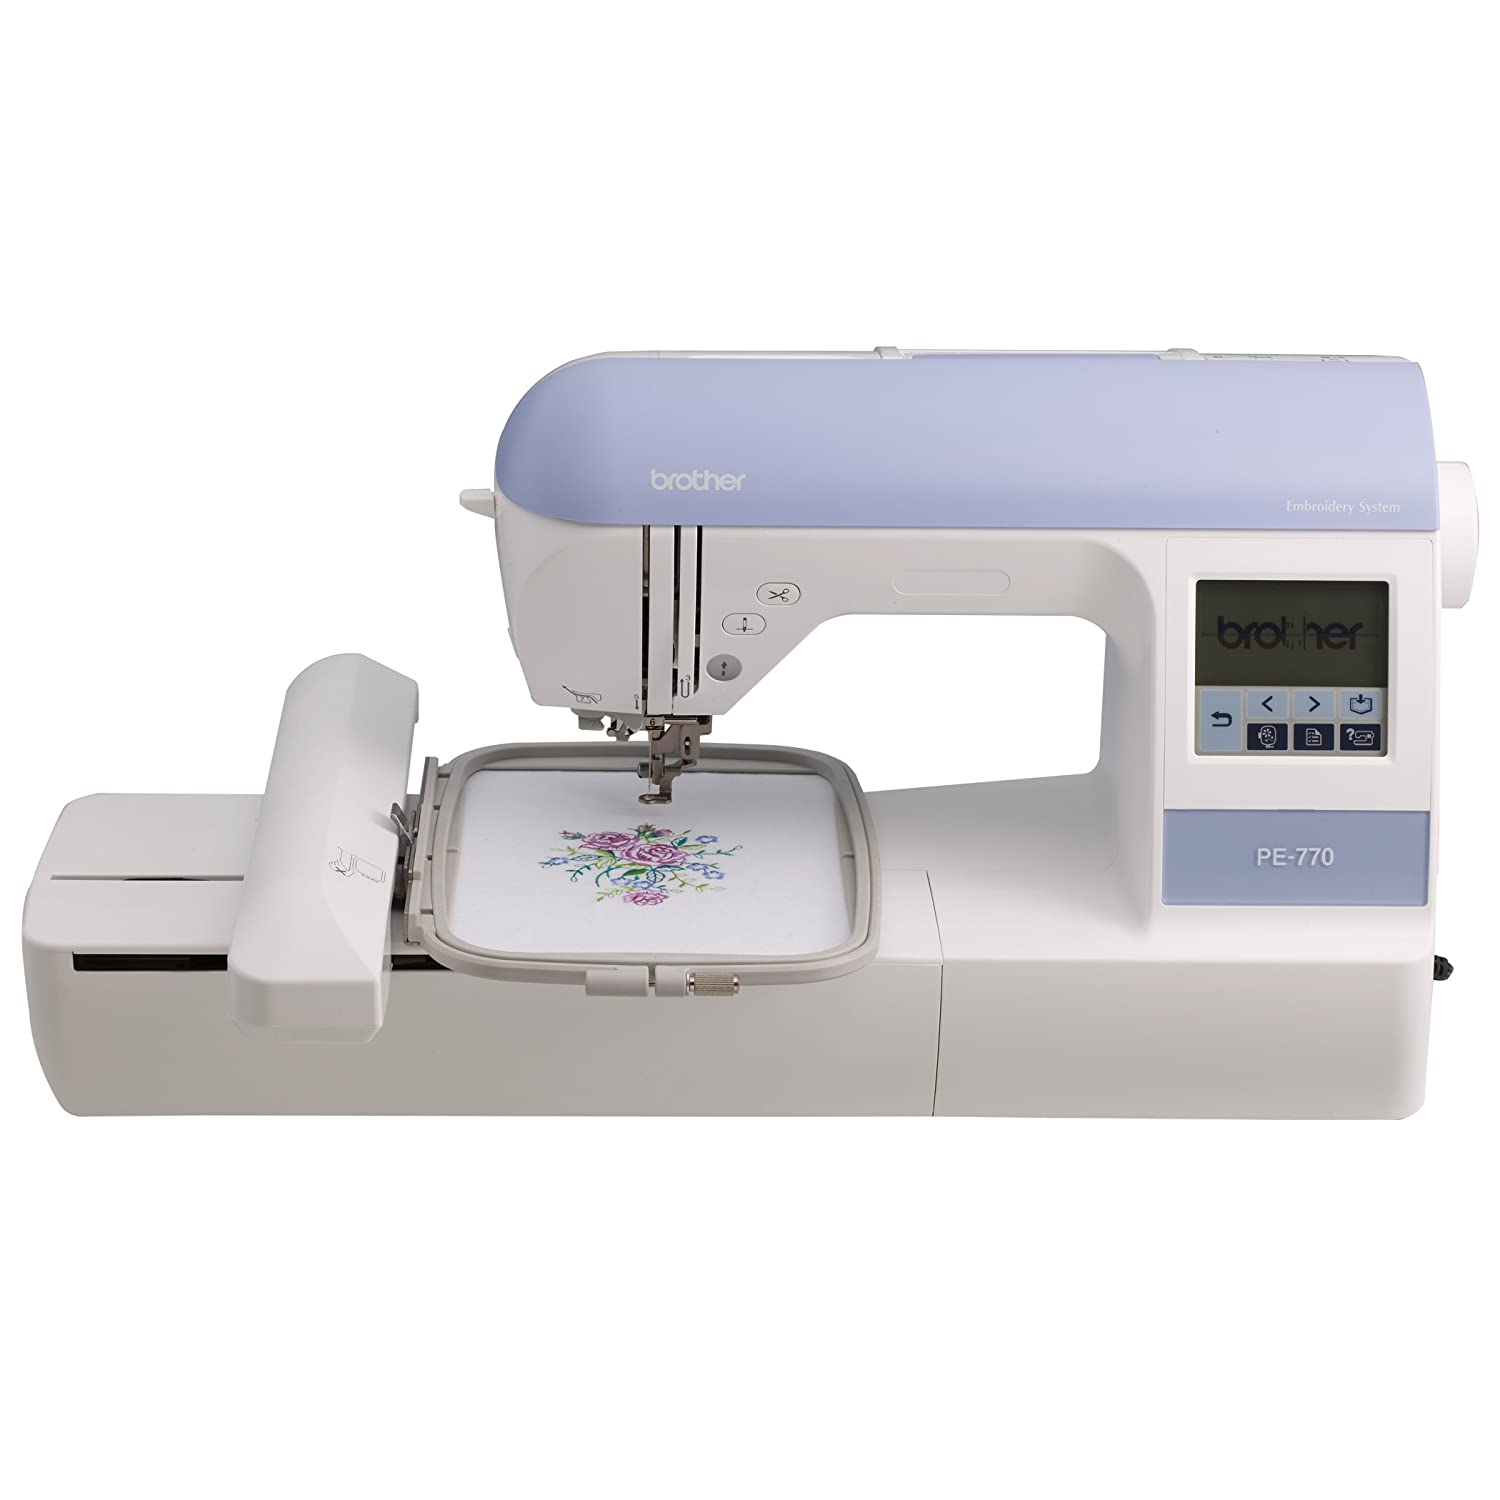 Brother PE770 5x7 – Best home embroidery machine